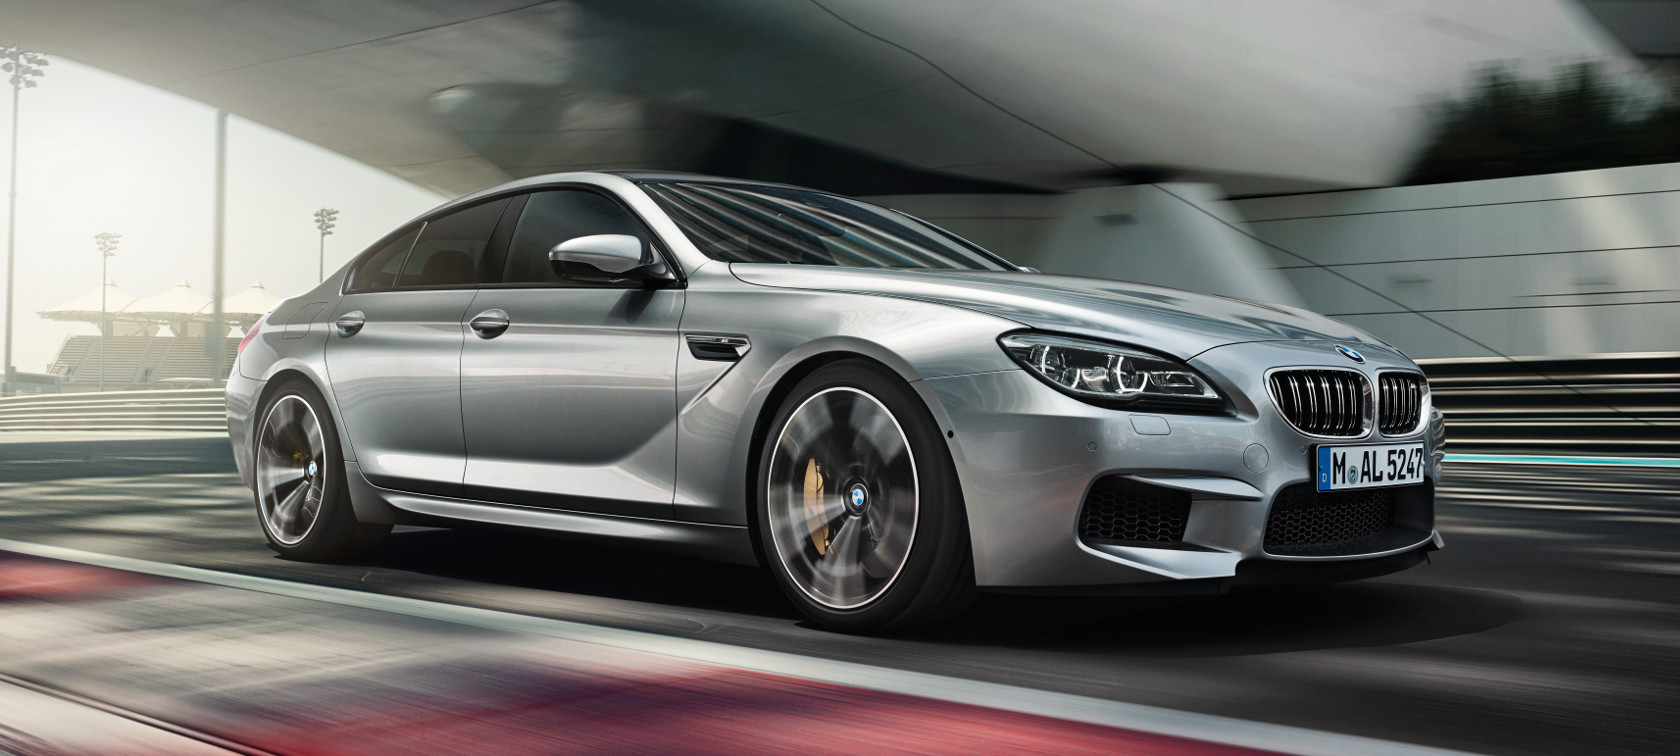 BMW M Series M6 Gran Coupe: luxurious style with elite car features.